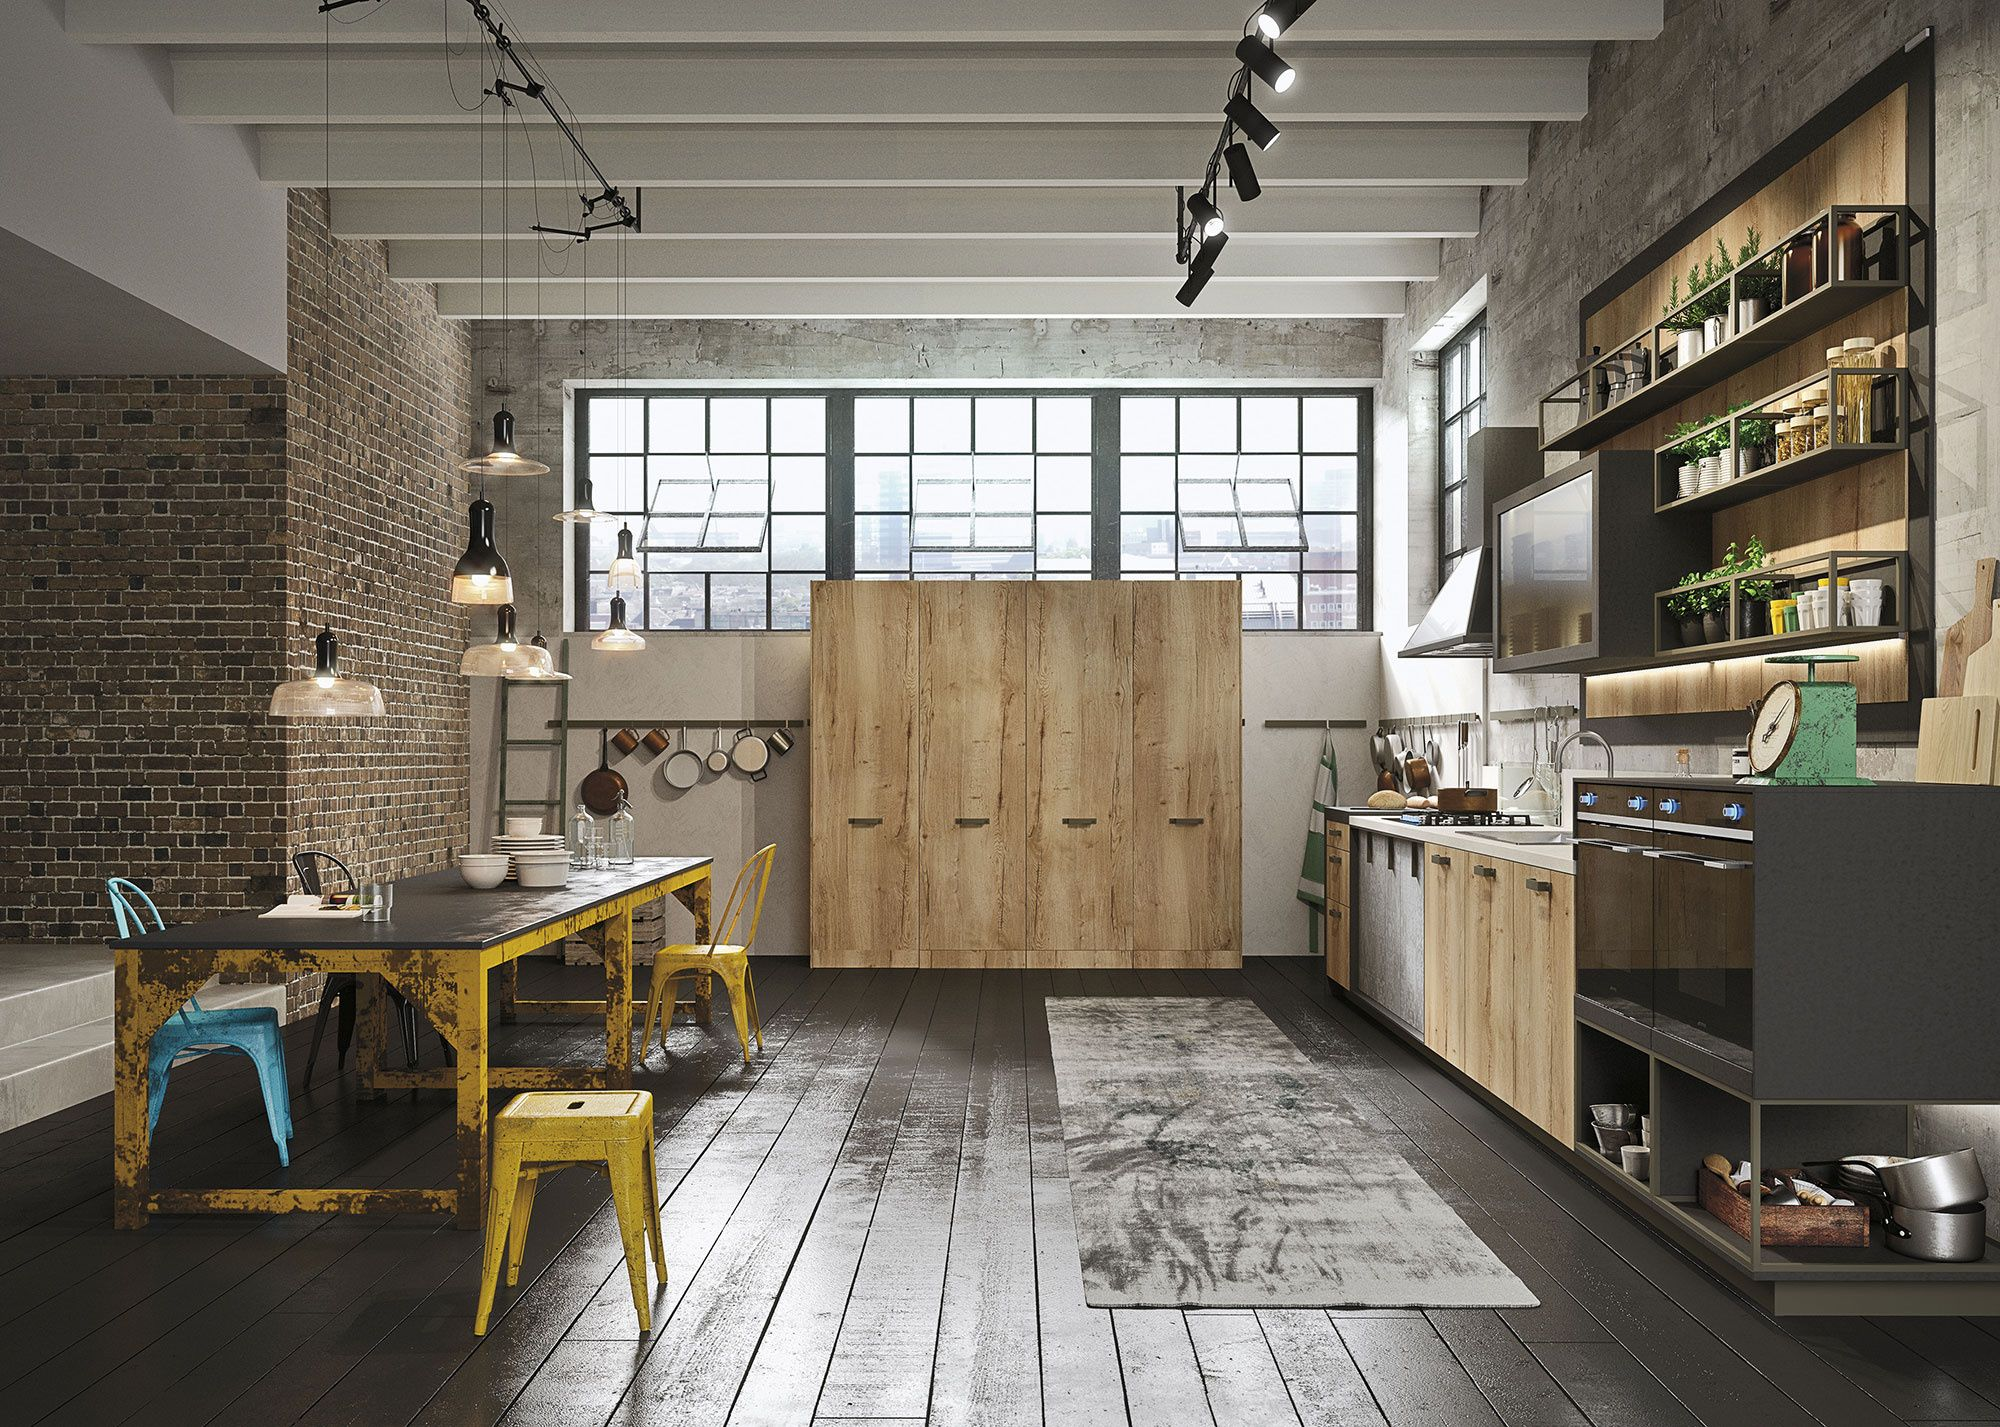 Kitchen Design for Lofts 3 Urban Ideas from Snaidero Urban loft